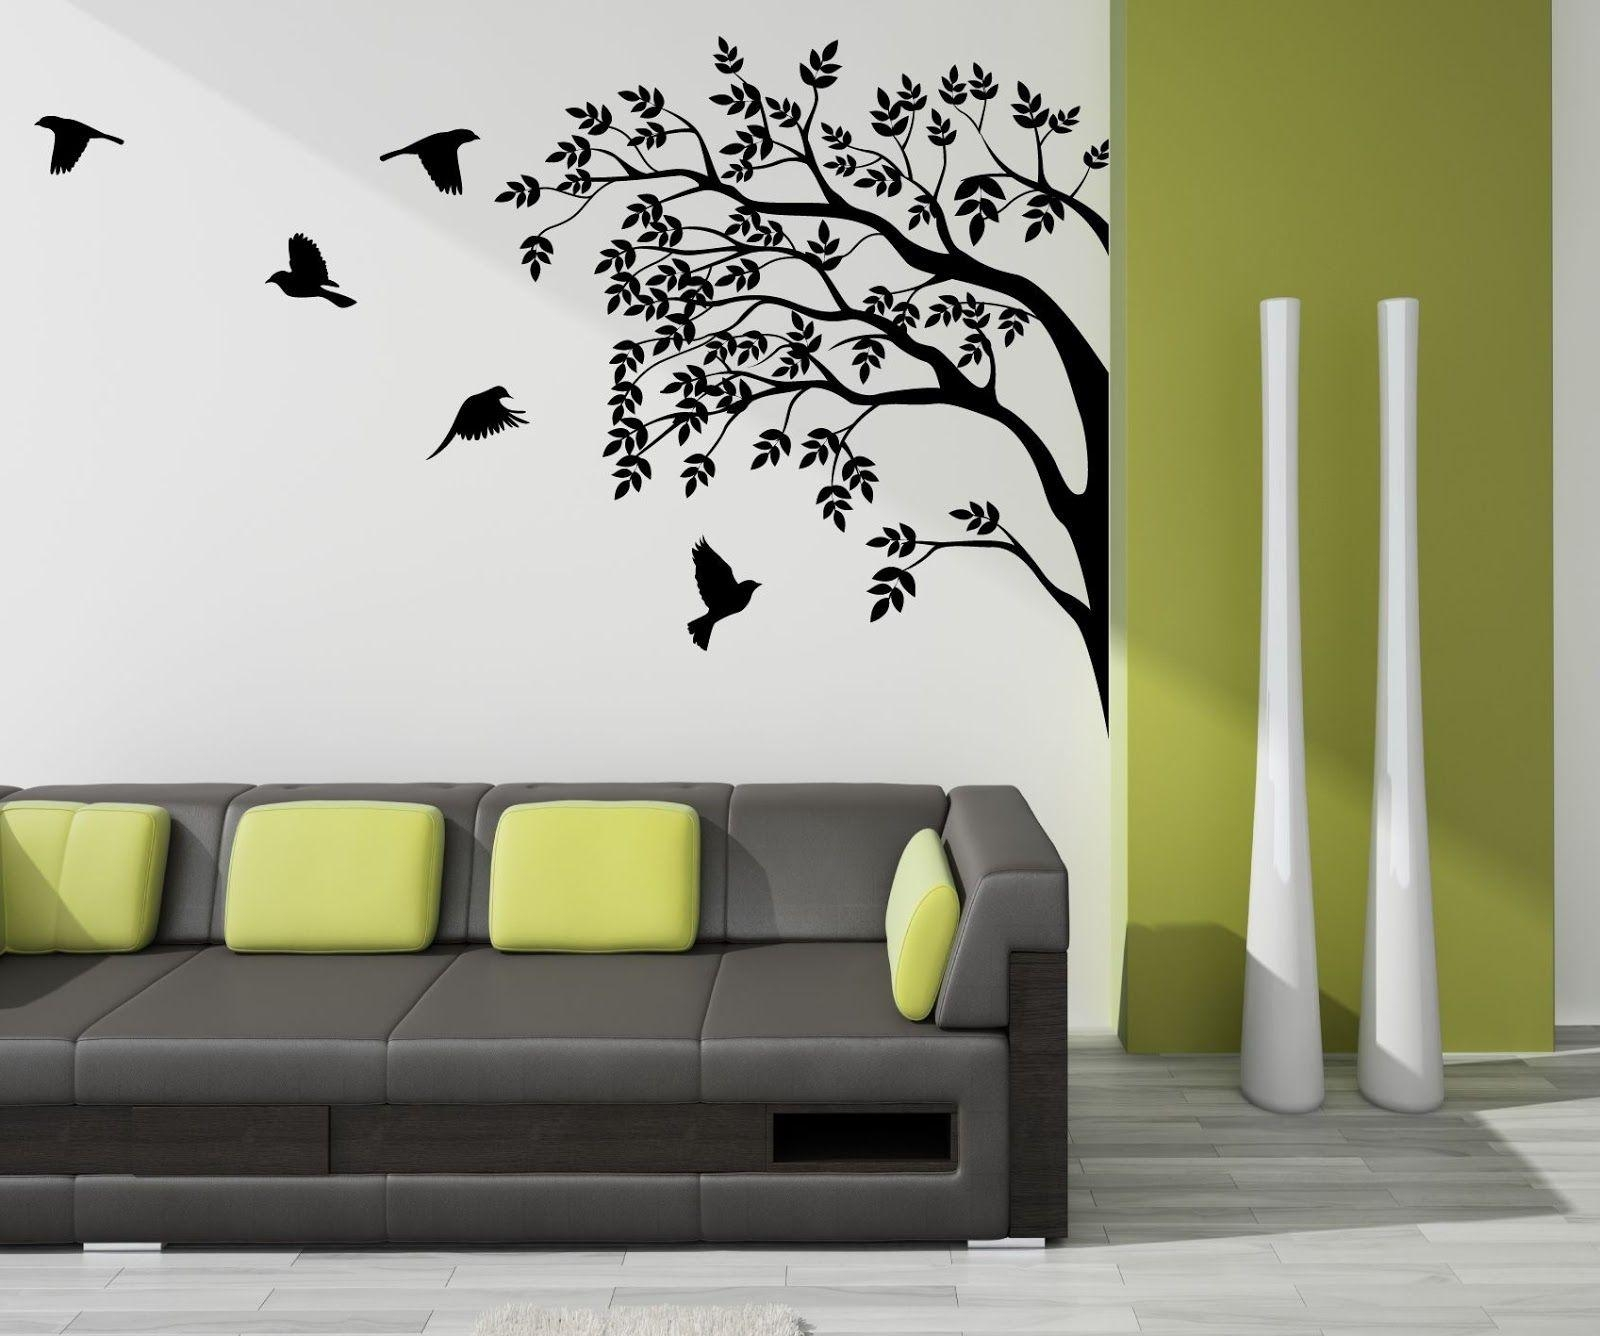 Decoration For Your Home Interior With Stunning Tree Images Wall Art Regarding Painted Trees Wall Art (View 1 of 20)